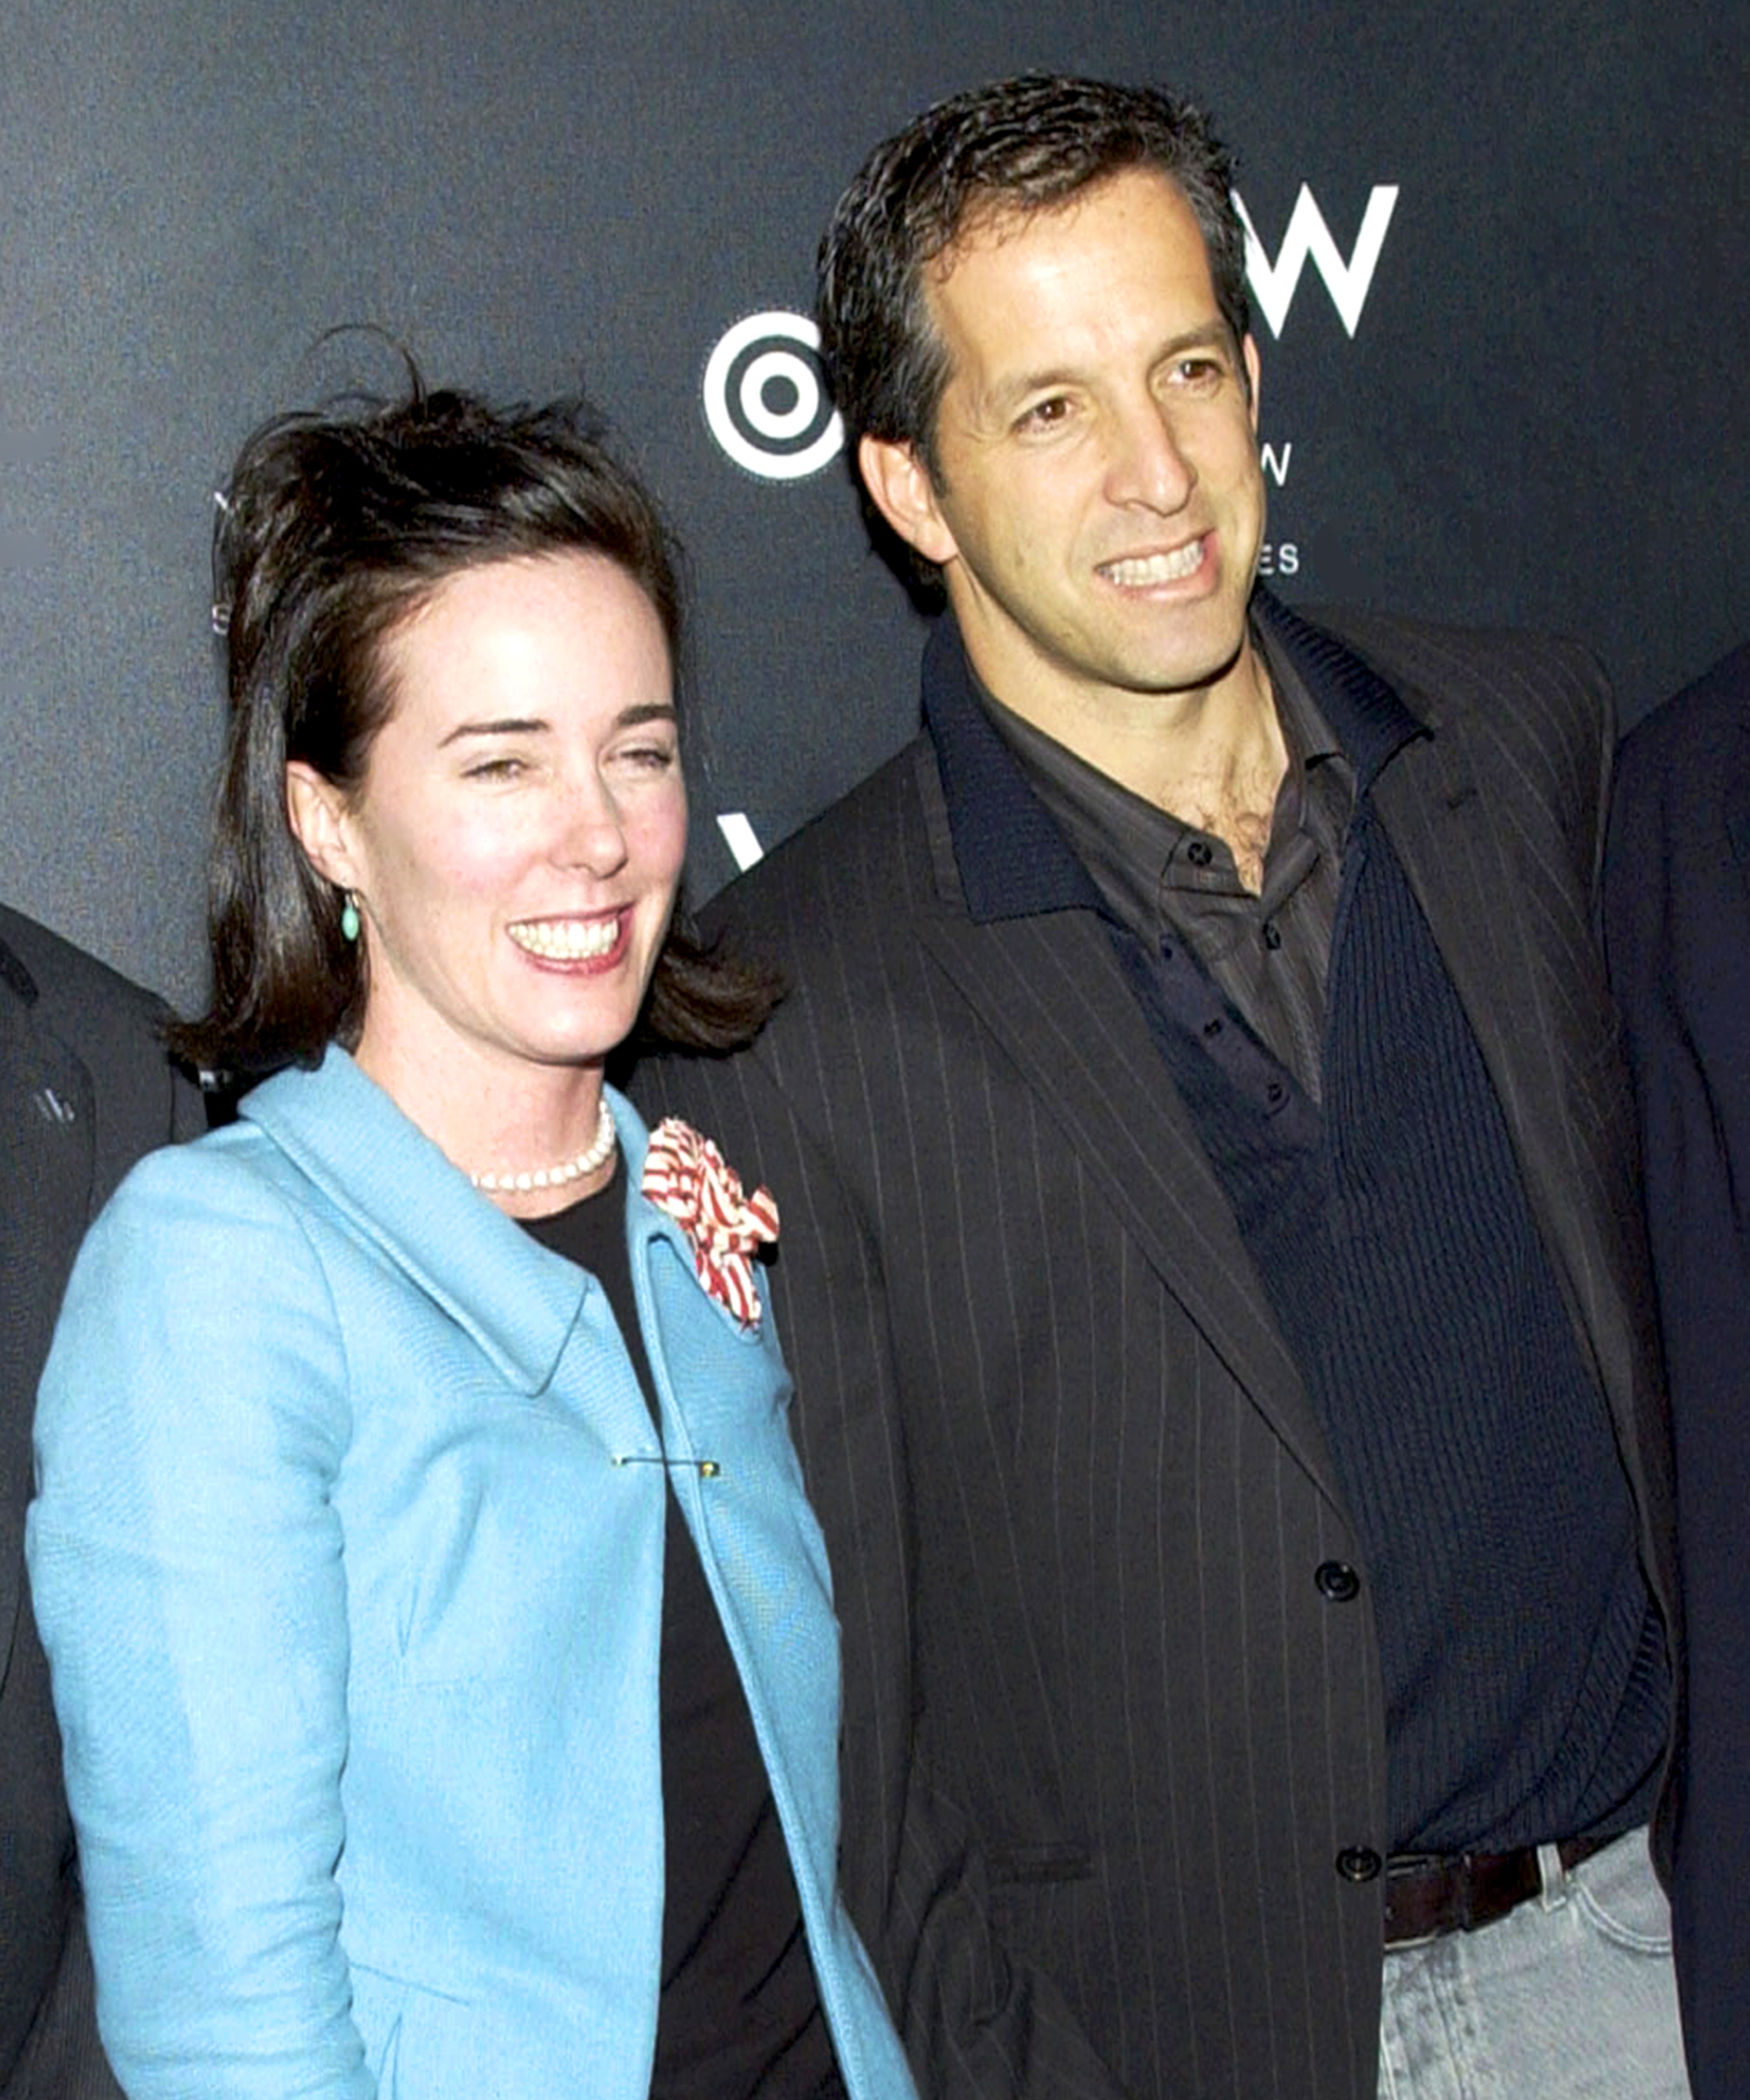 fc8701225d06 Kenneth Cole and Kate Spade attend the W Times Square Hotel opening in New  York City